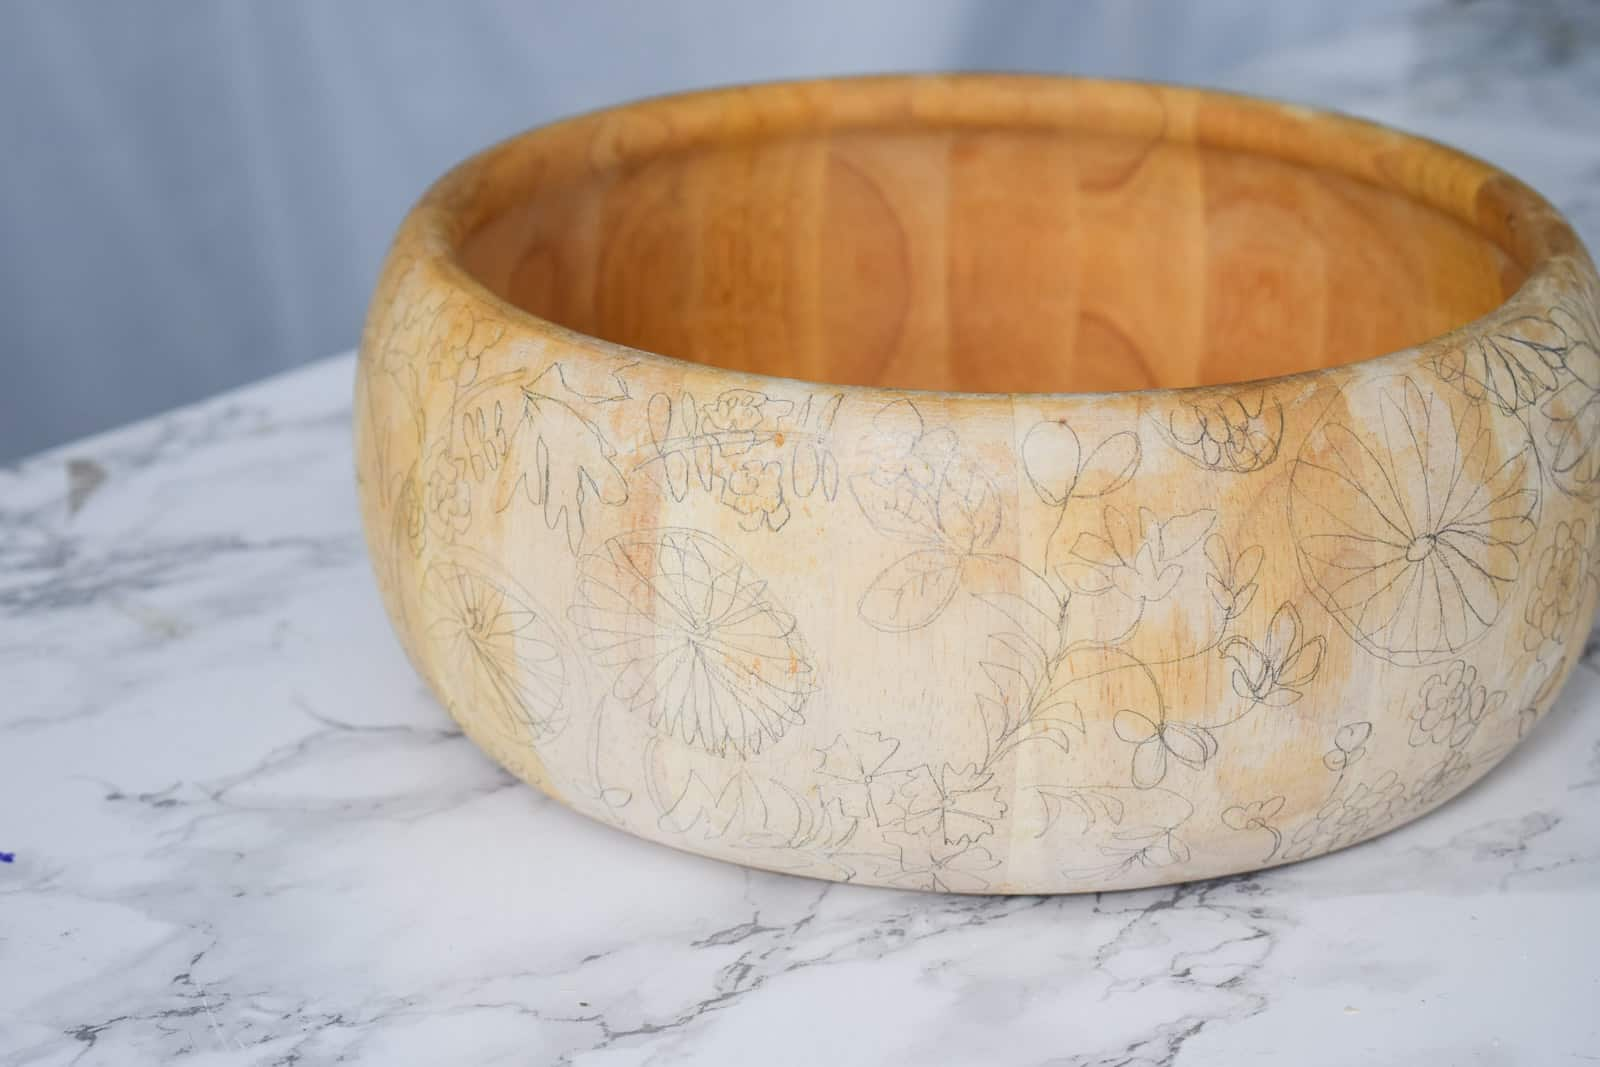 pencil outline on thrift store bowl